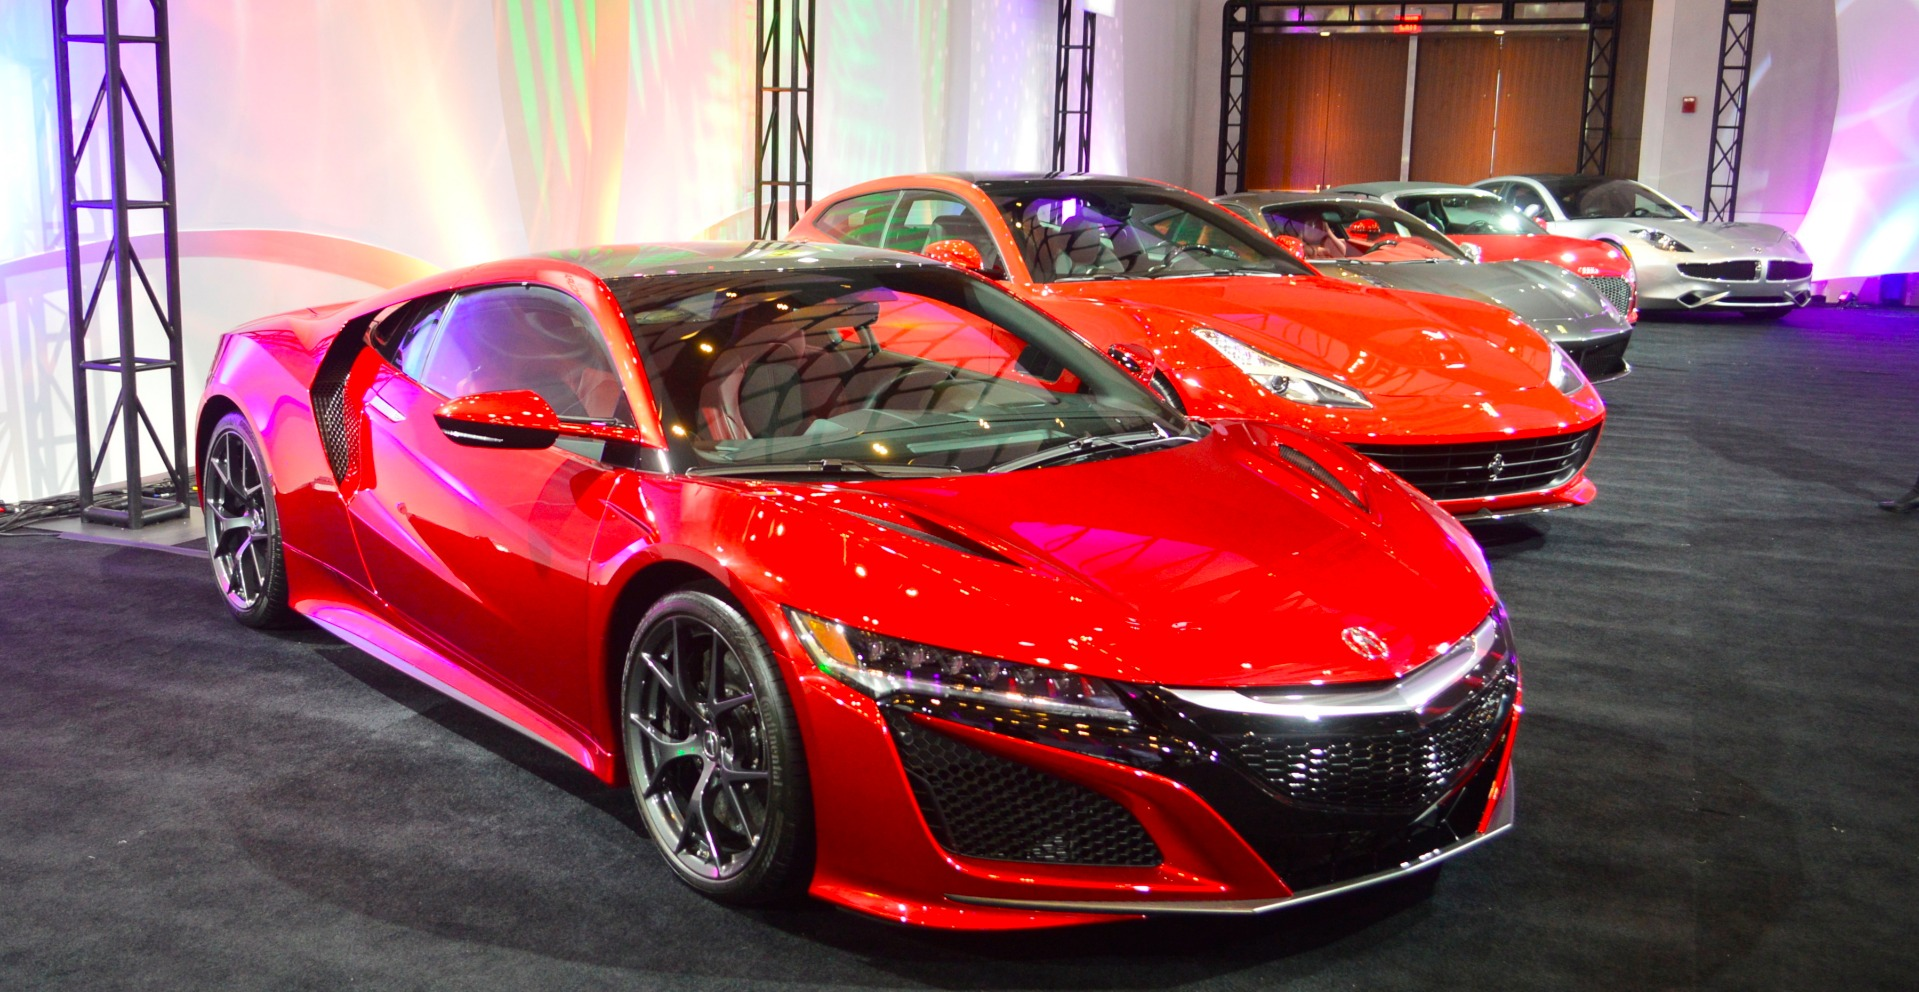 Motor City madness: Cars of the 2018 Detroit auto show